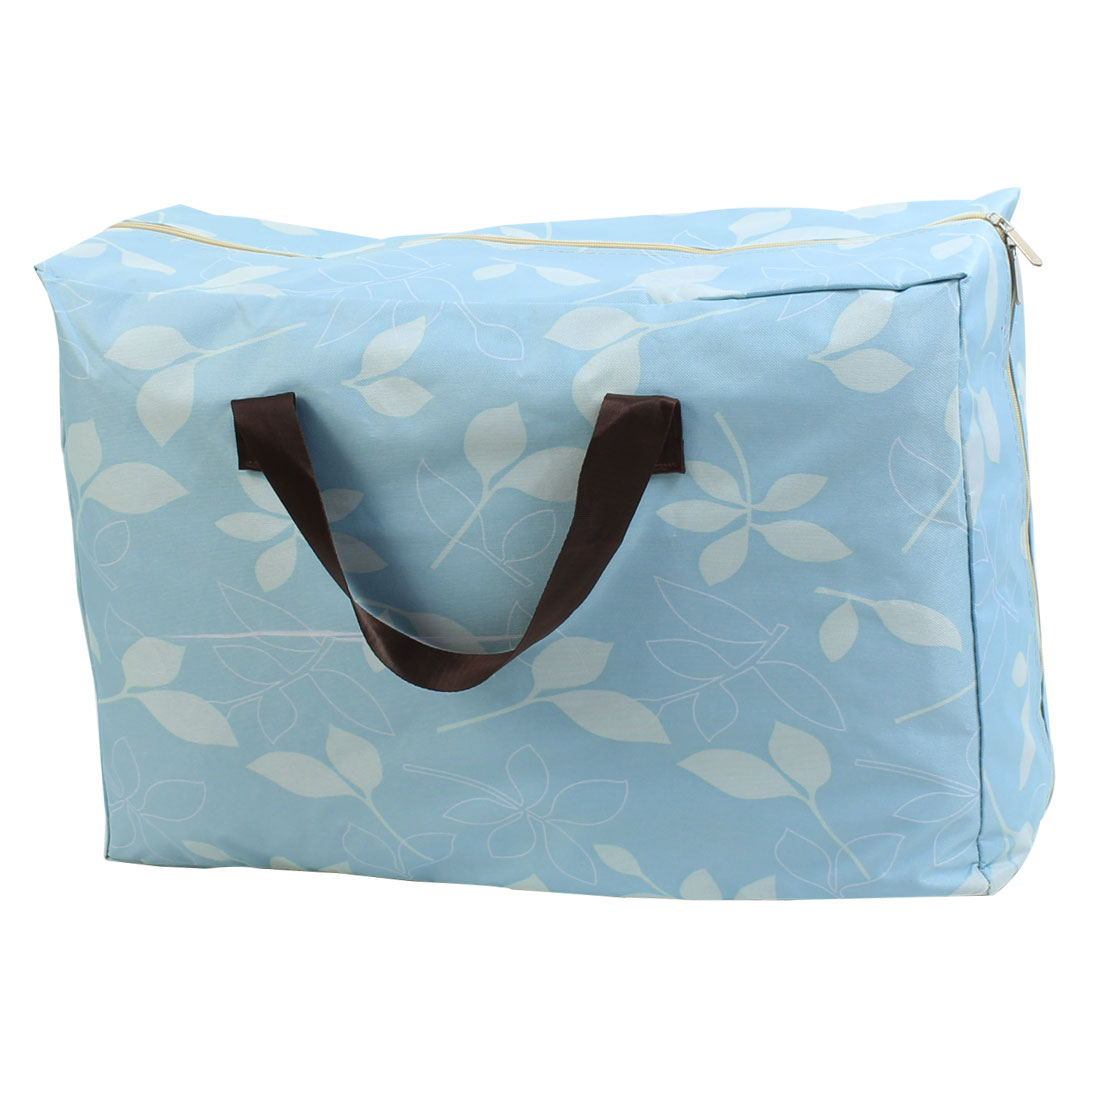 Home Fabric Flower Printed Zippered Quilt Storage Bag Blue 56 x 38 x 20cm